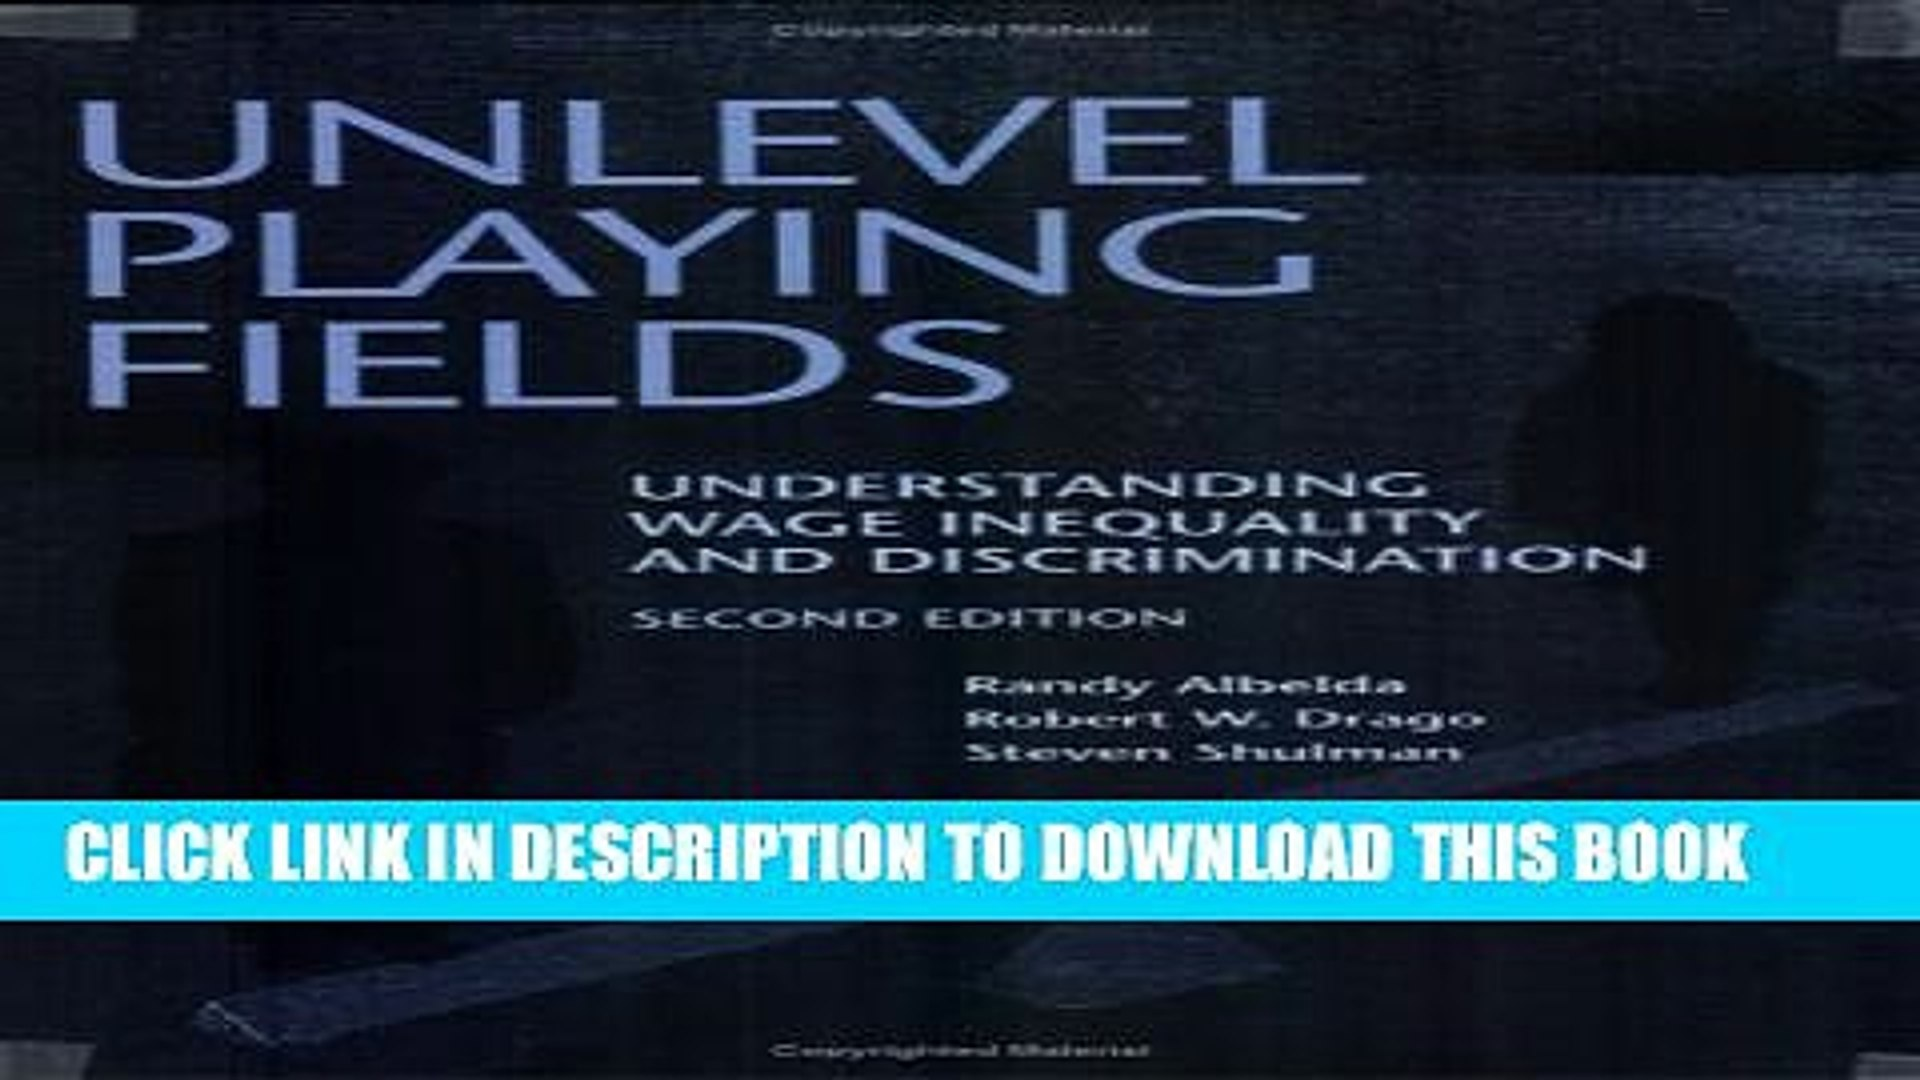 [PDF] Unlevel Playing Fields: Understanding Wage Inequality and Discrimination, Second Edition